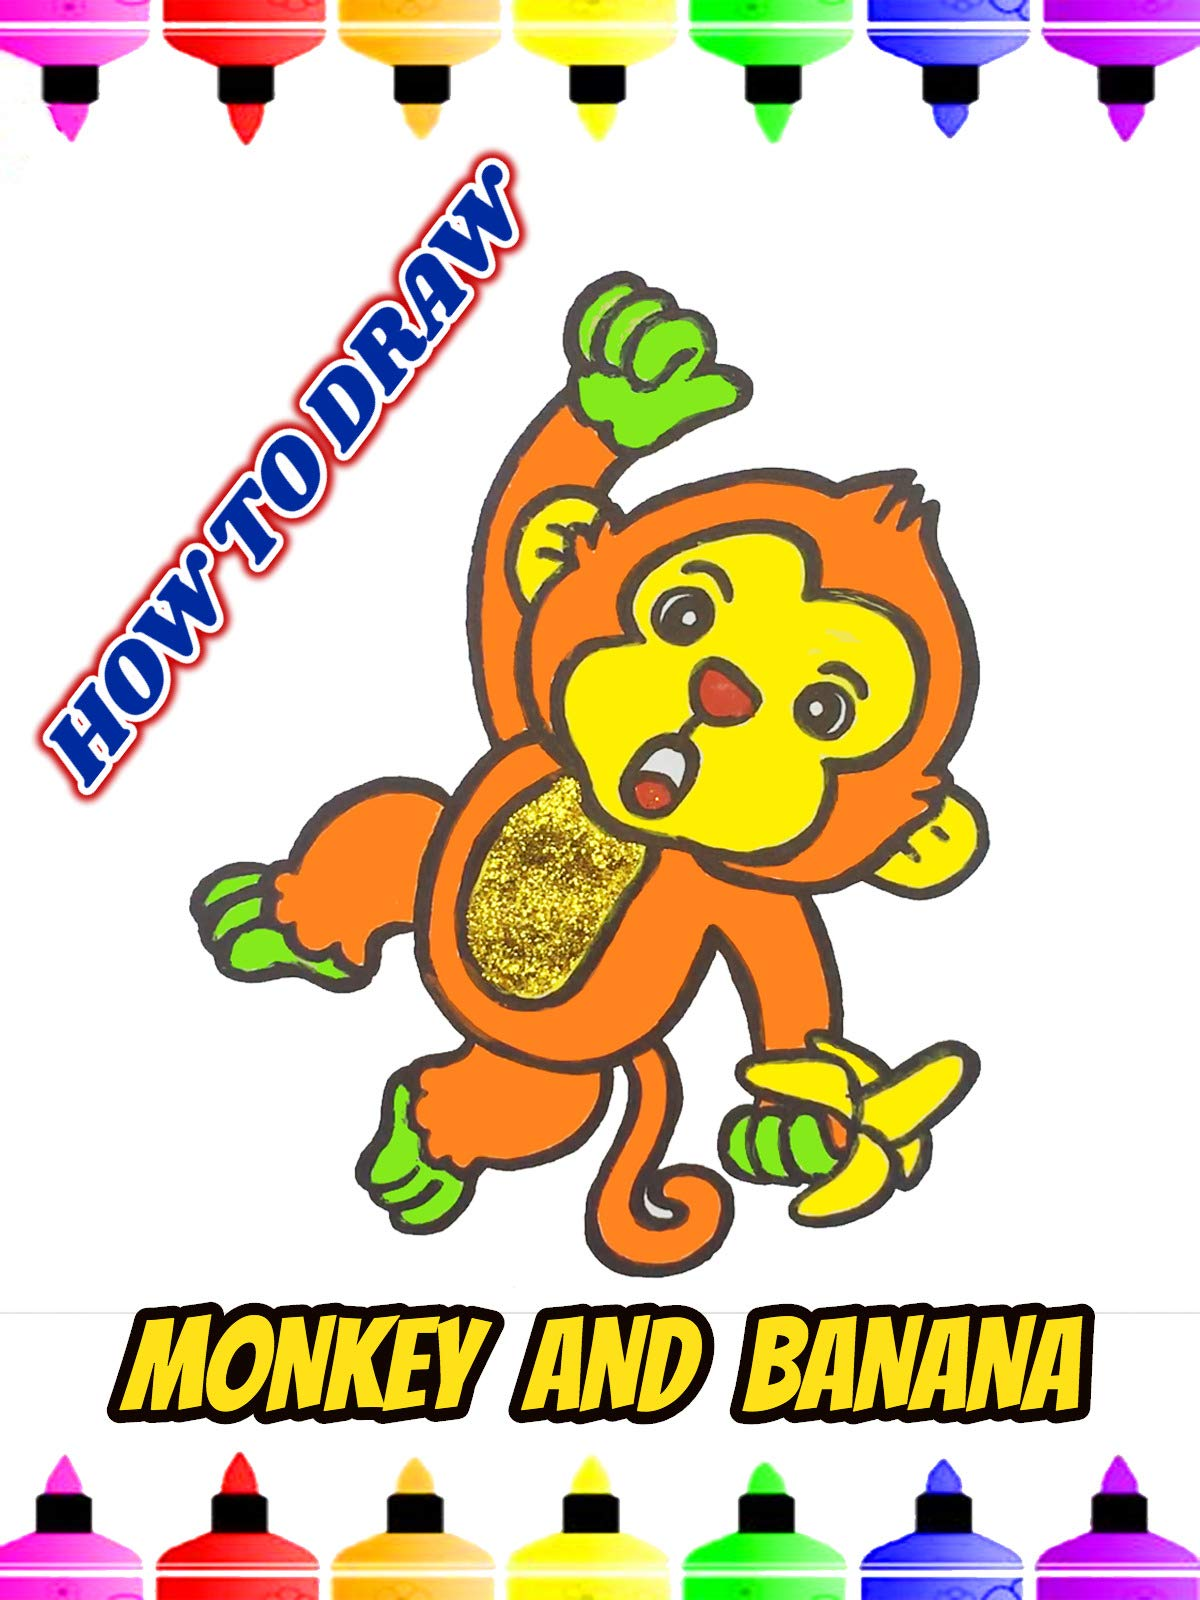 How To Draw Monkey and Banana